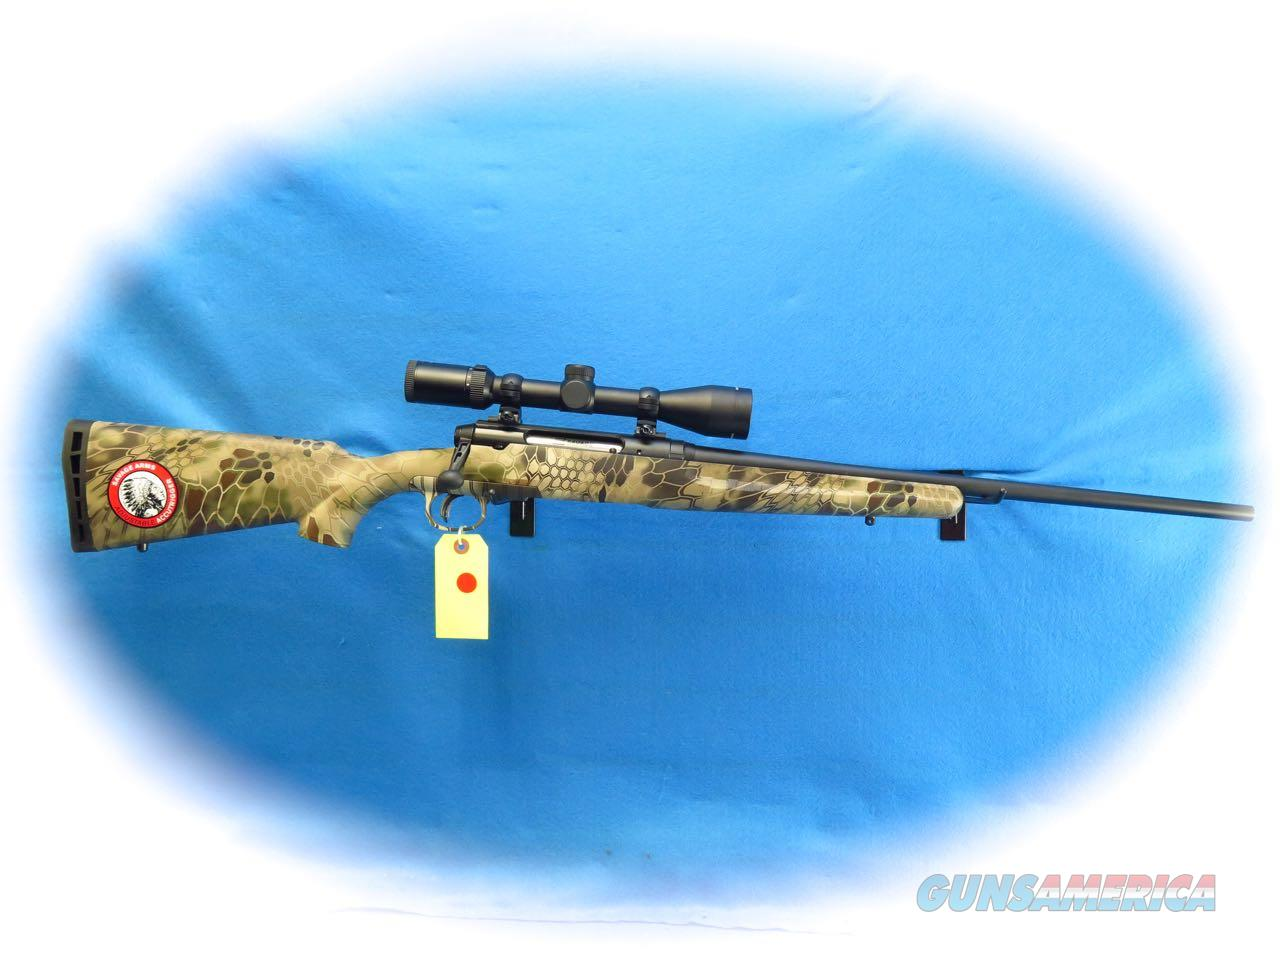 Savage Axis II XP Rifle/Scope Pkg .308 Win Cal Kryptek Highlander Camo **New**  Guns > Rifles > Savage Rifles > Accutrigger Models > Sporting